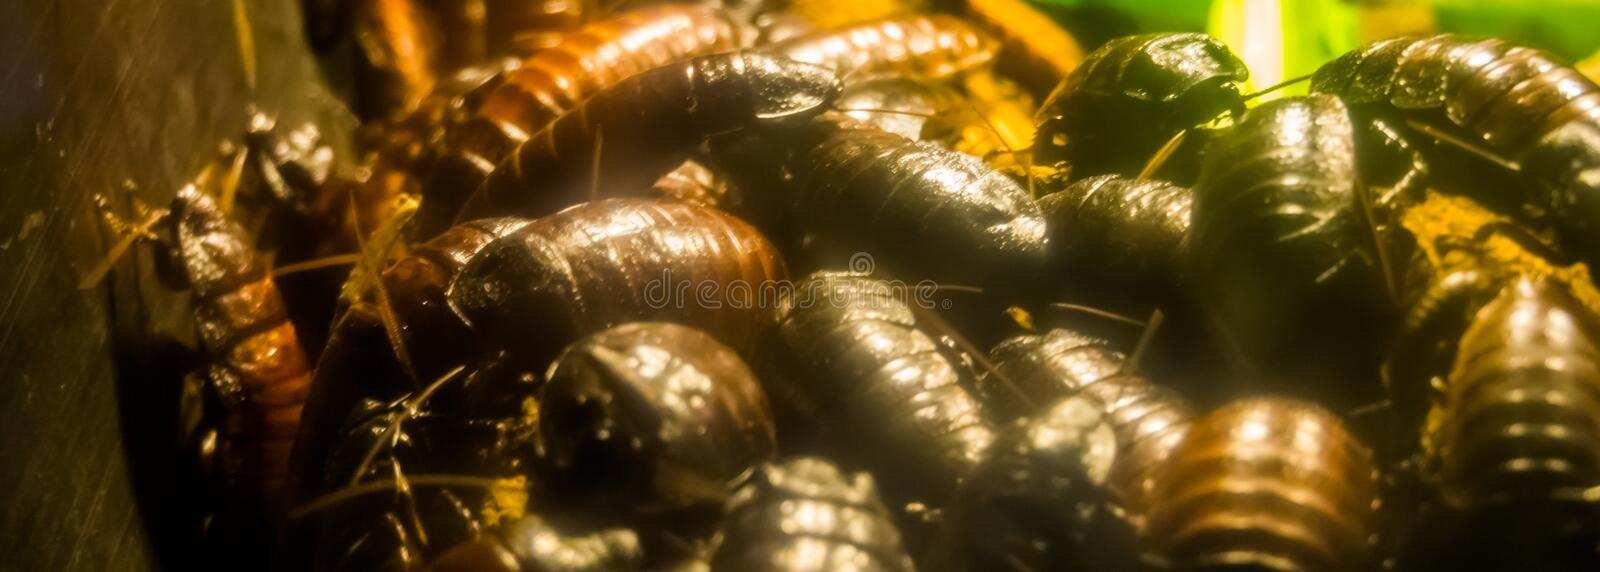 Large group of madagascar hissing cockroaches in closeup, big family of giant roaches, tropical insect specie from madagascar royalty free stock photo